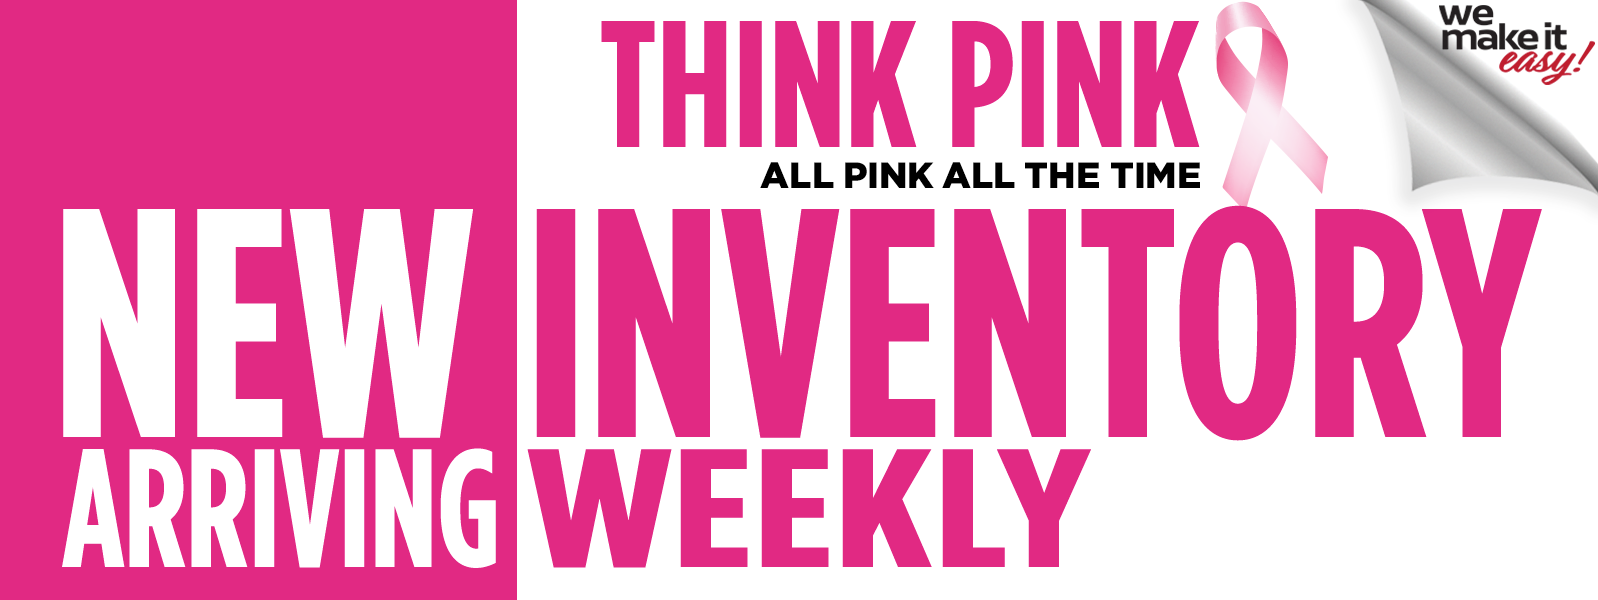 Think Pink New Inventory Arriving Weekly